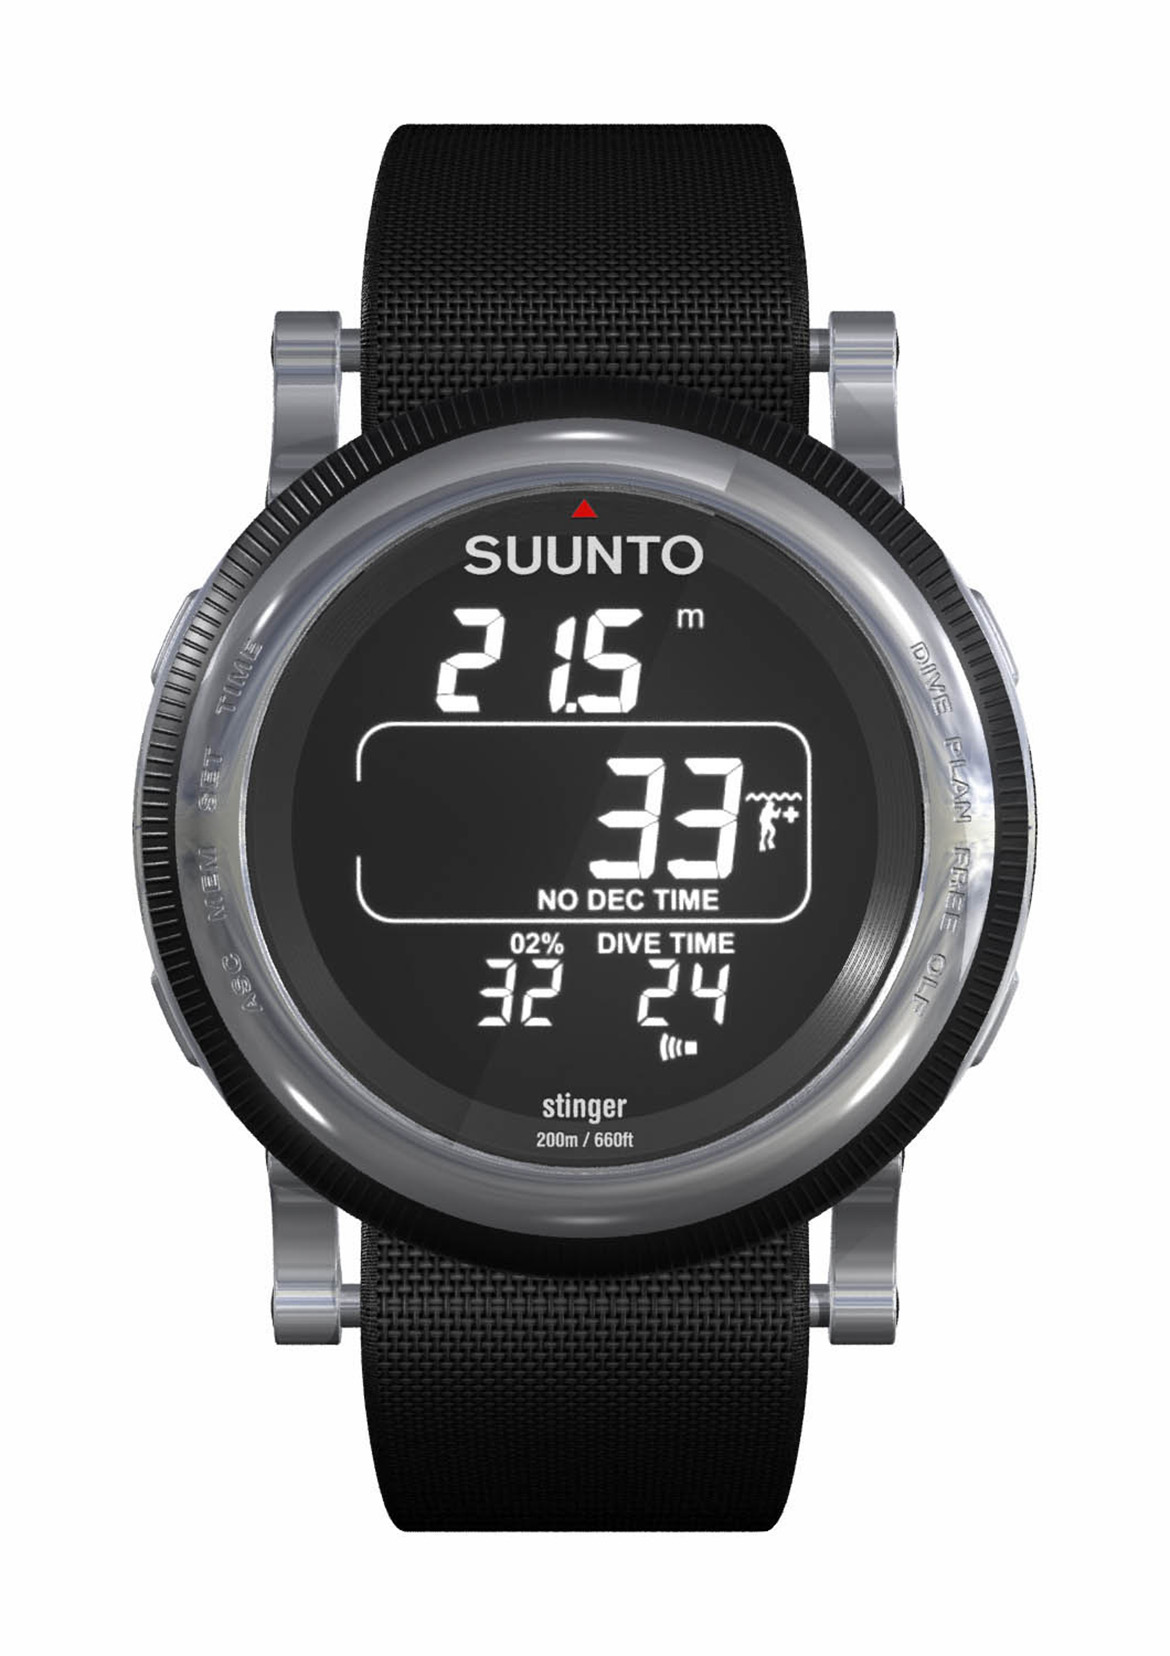 Suunto Art Direction